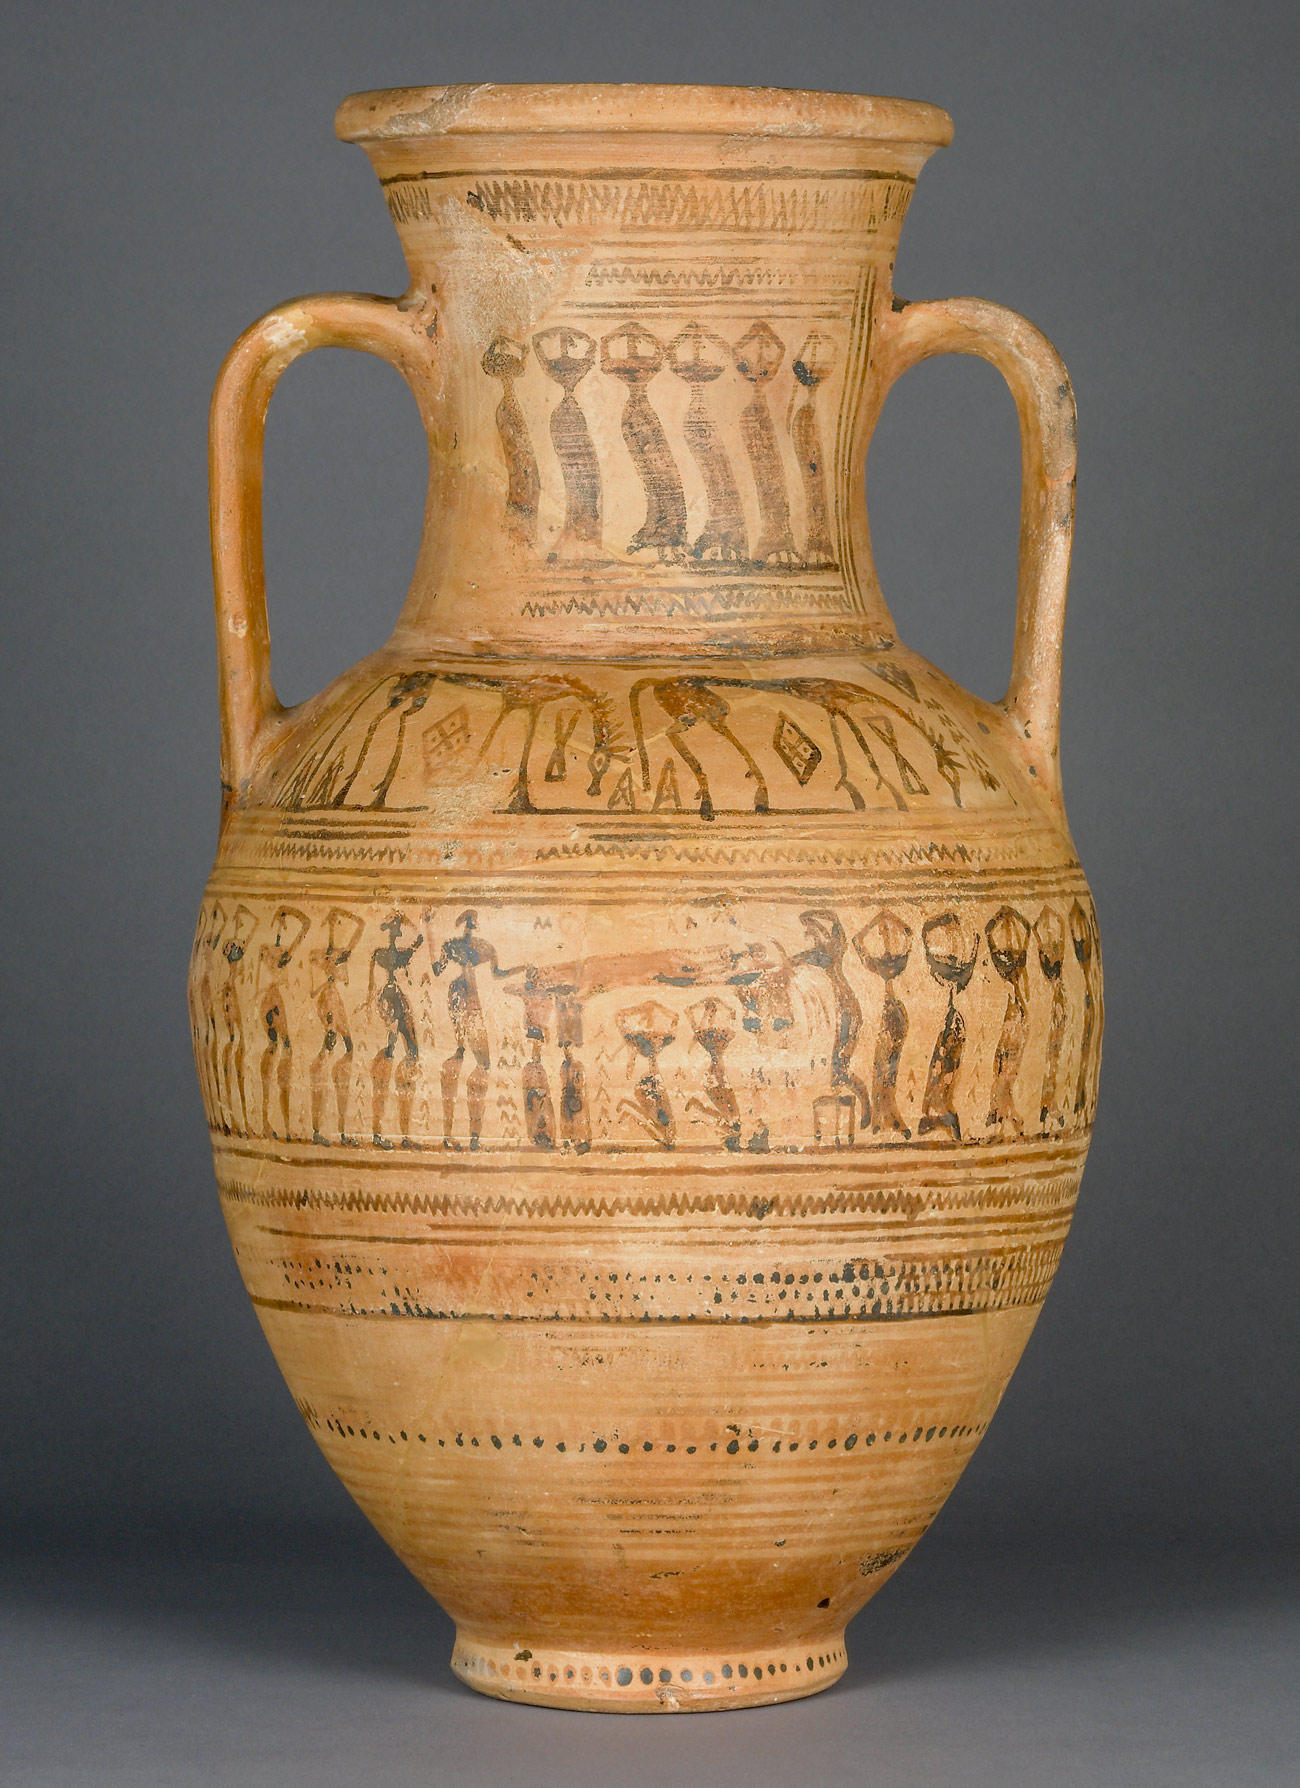 A ceramic urn with faded illustrations including horses, and human figures.